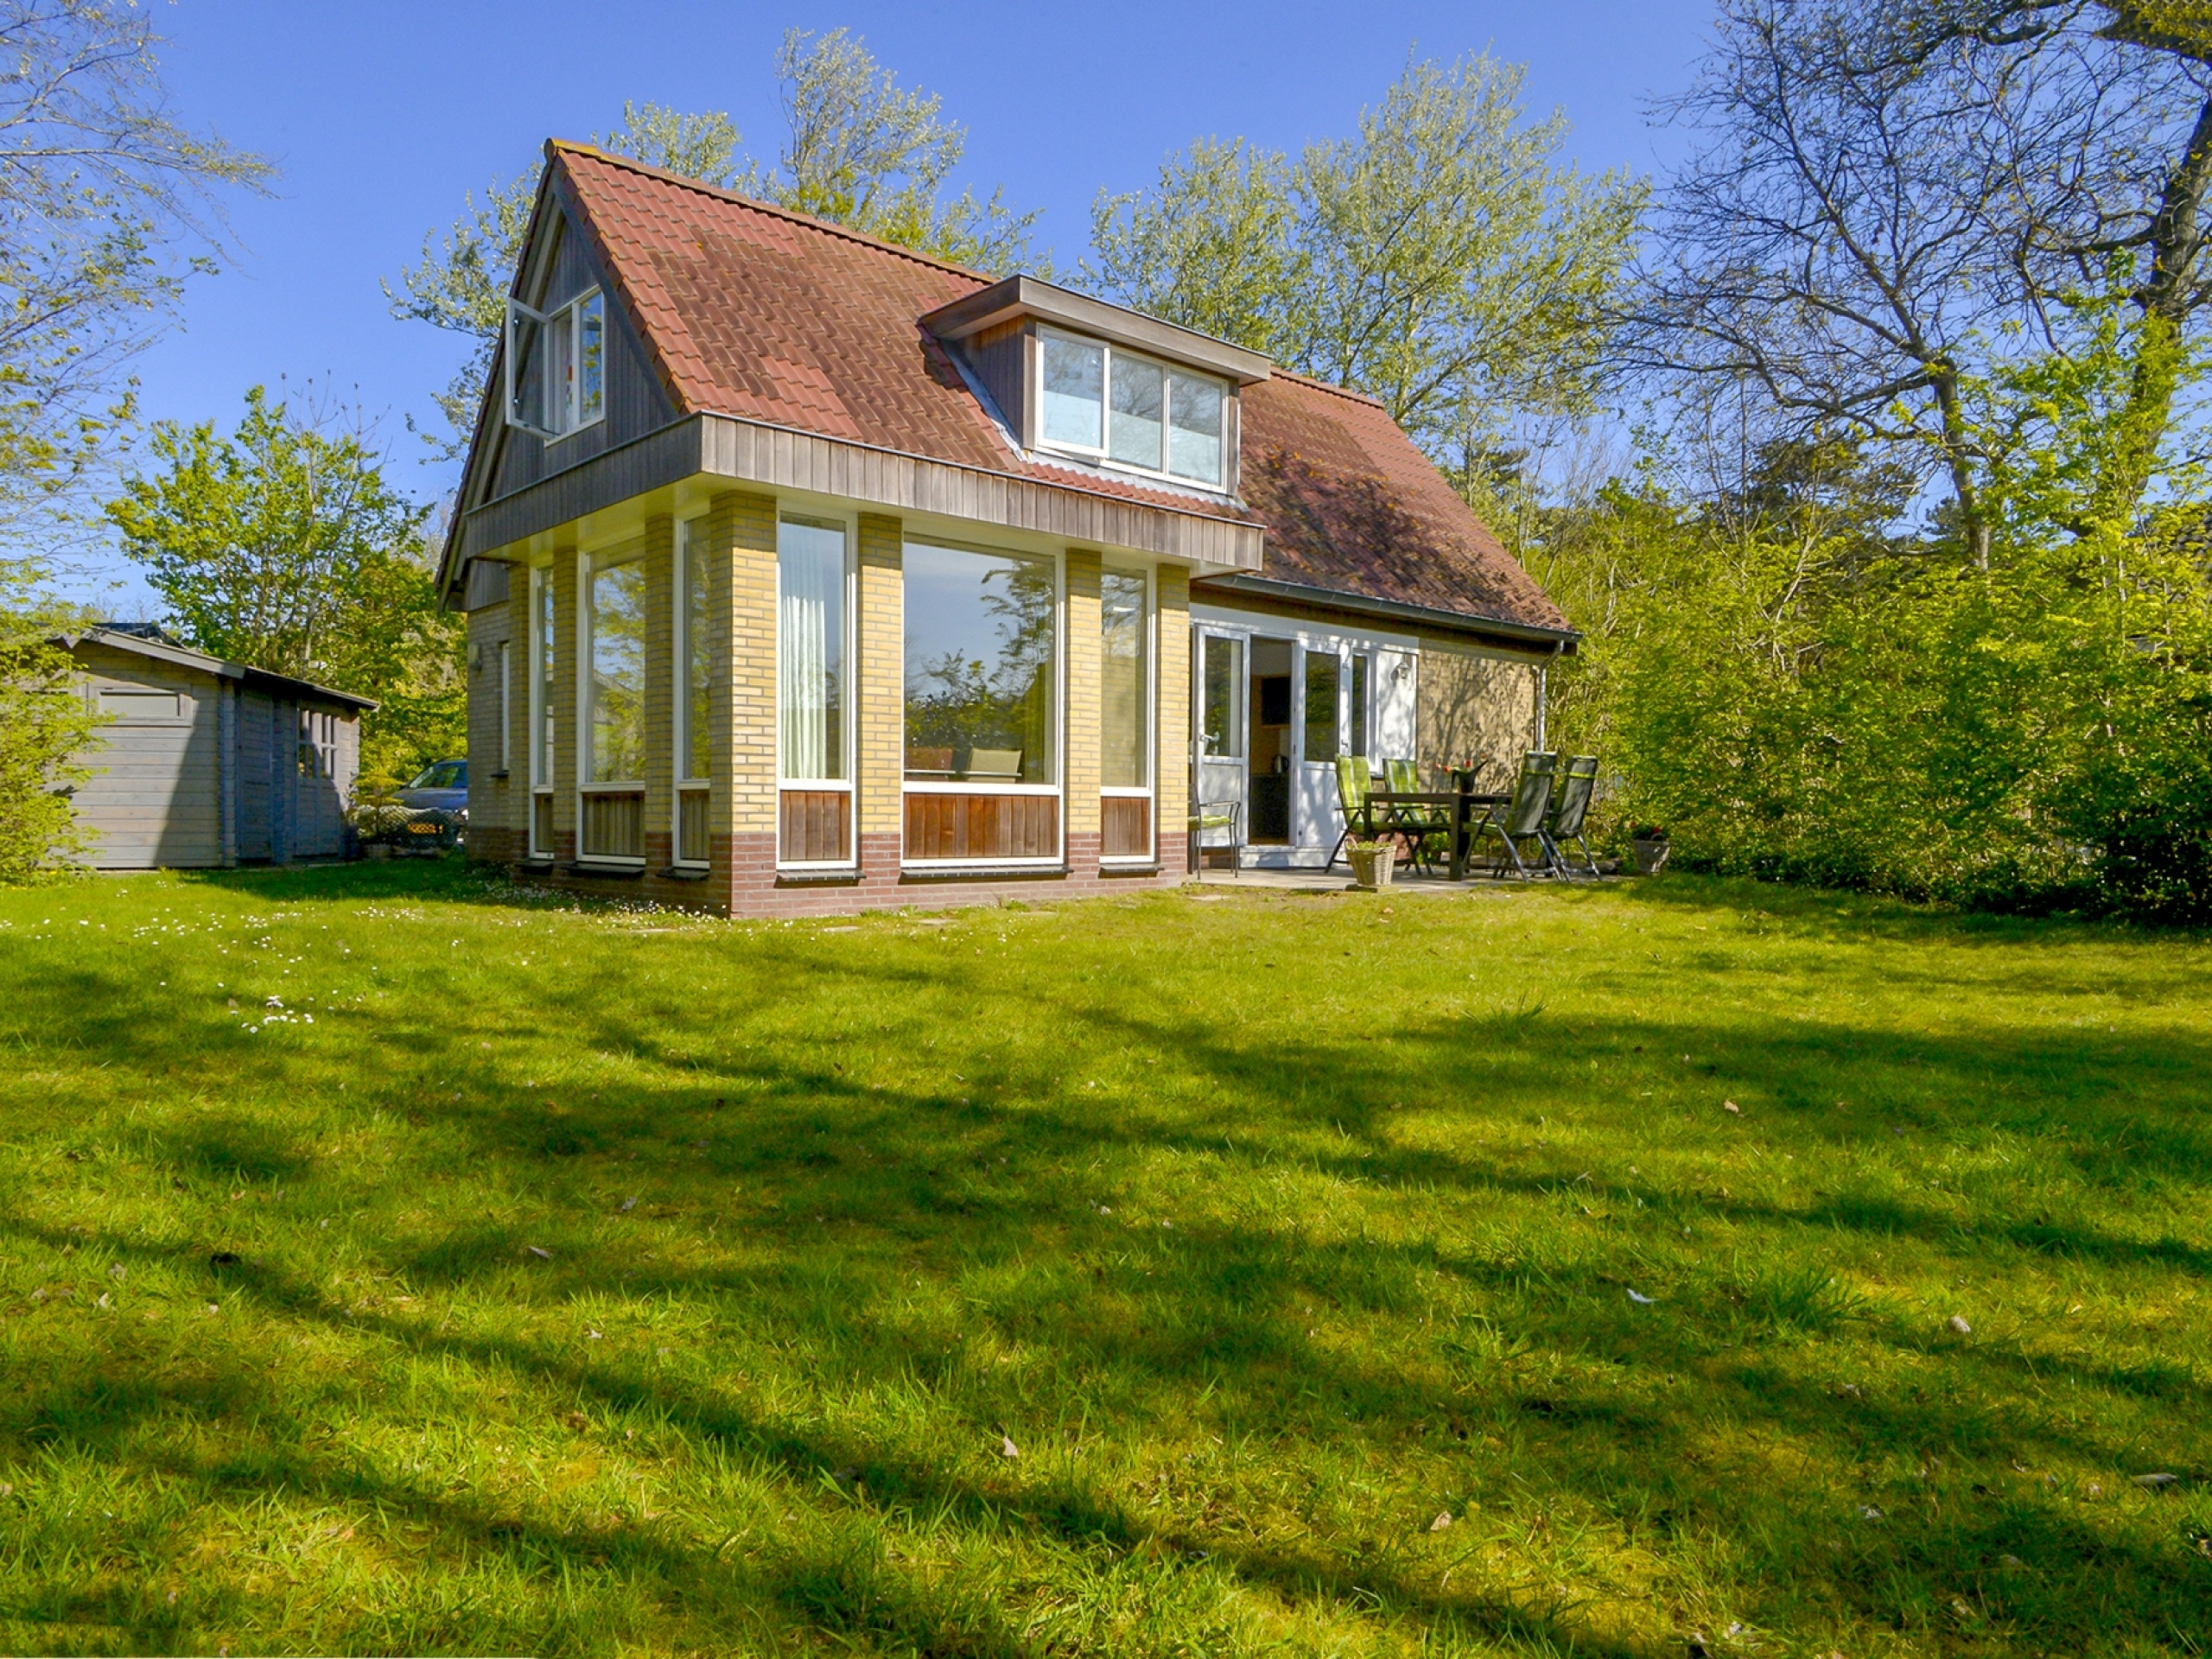 Relax in this tranquil detached holiday home near De Koog